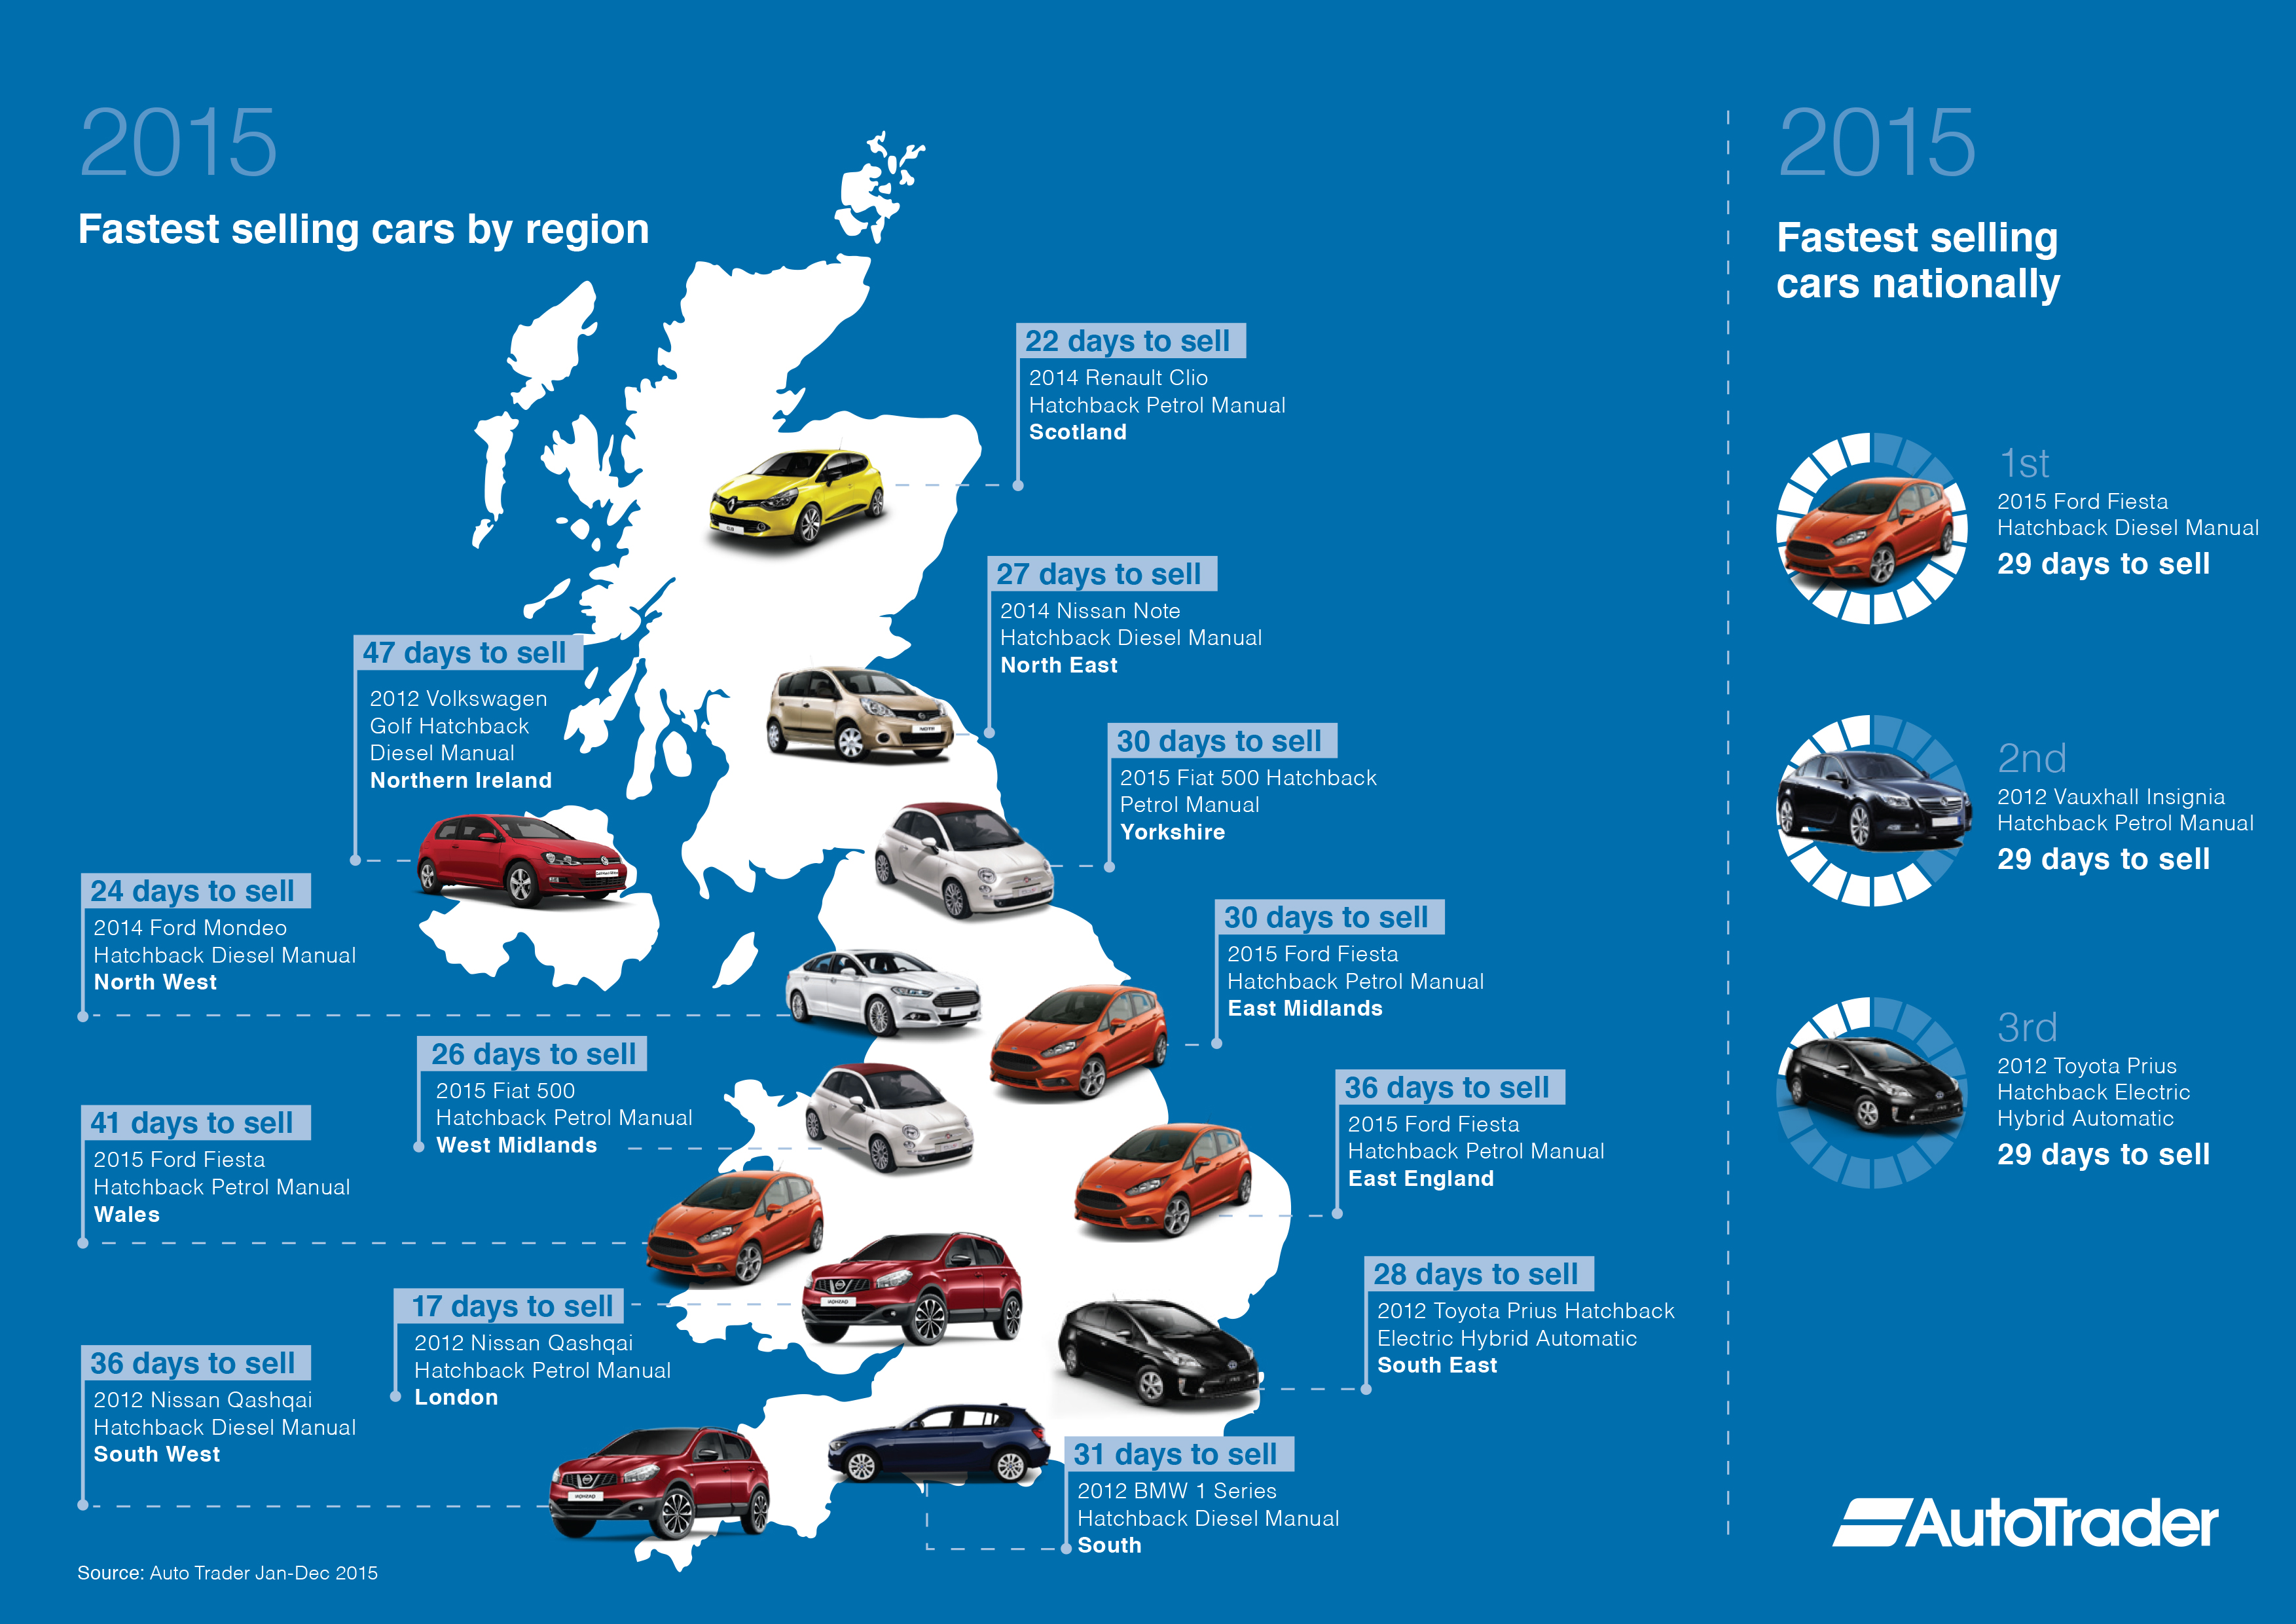 Auto Trader Announces Quickest Selling Used Cars Of 2015